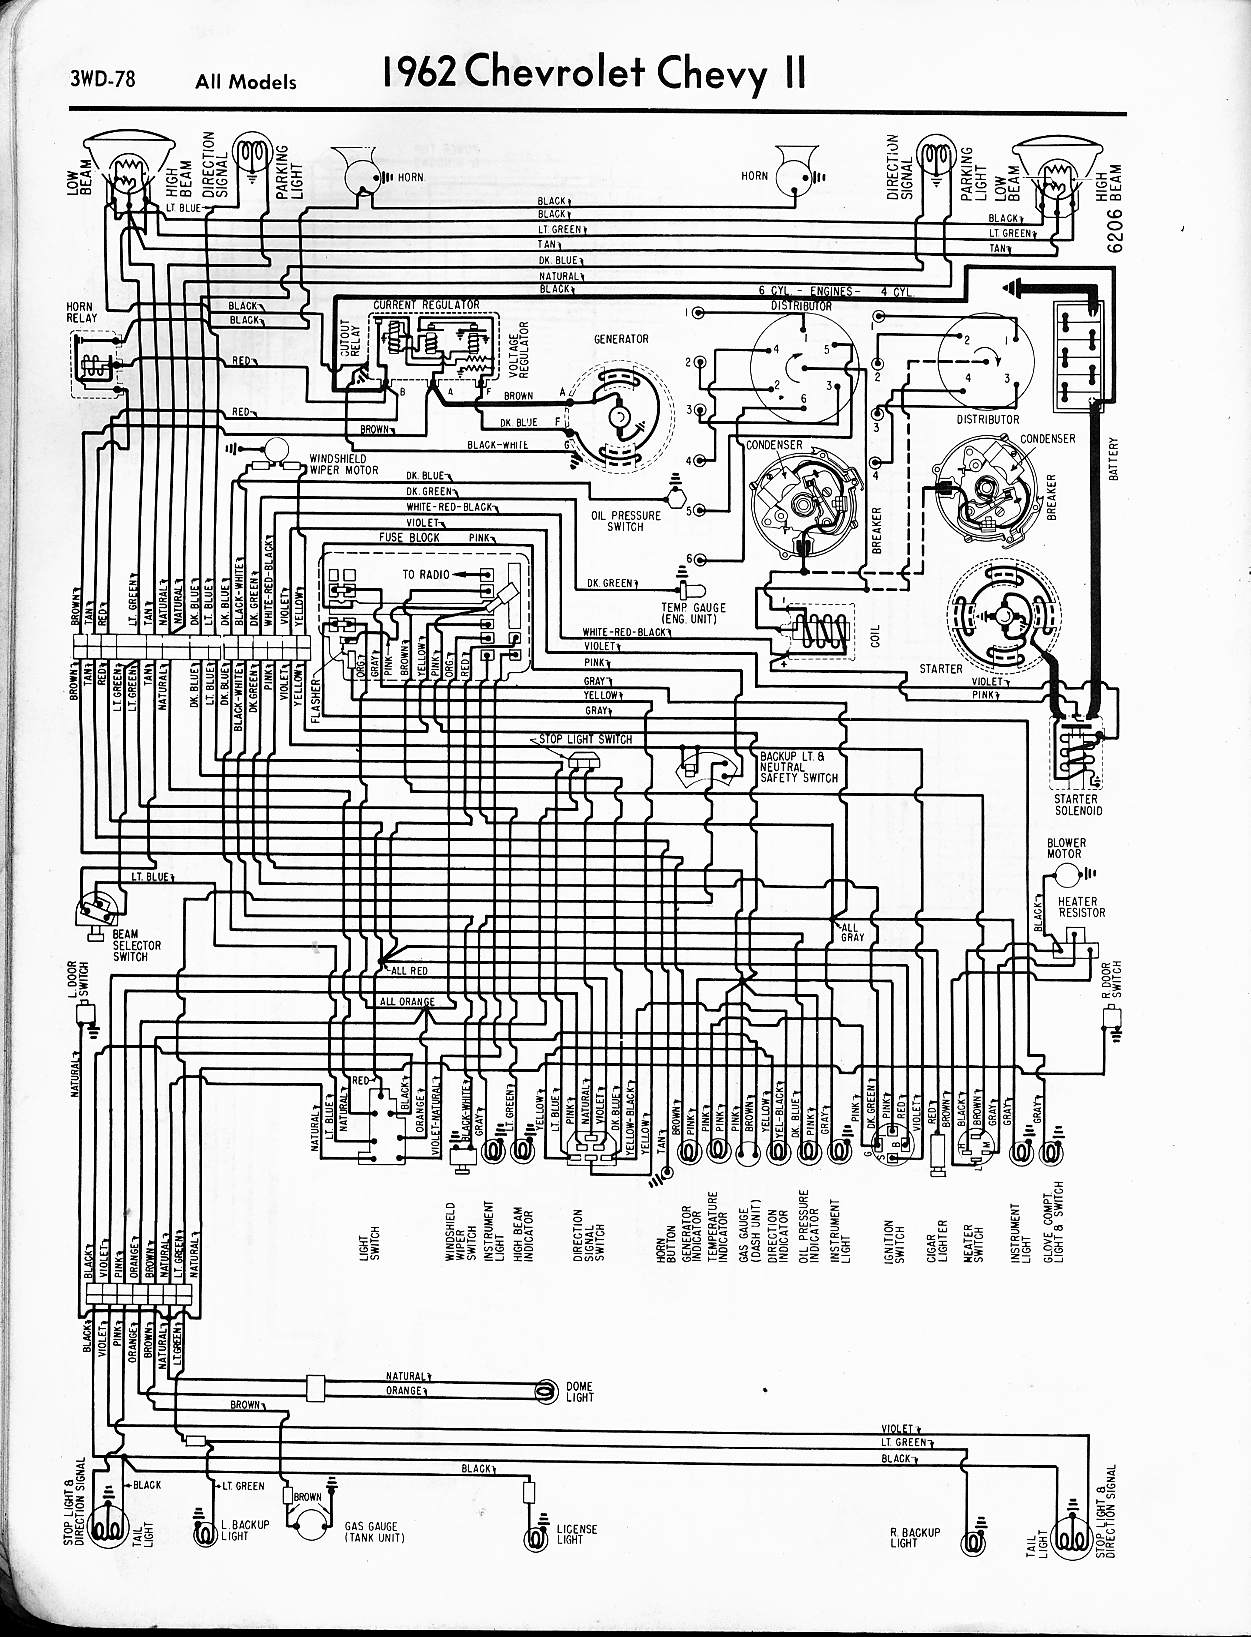 MWireChev62_3WD 078 57 65 chevy wiring diagrams 1966 chevy impala wiring diagram at crackthecode.co